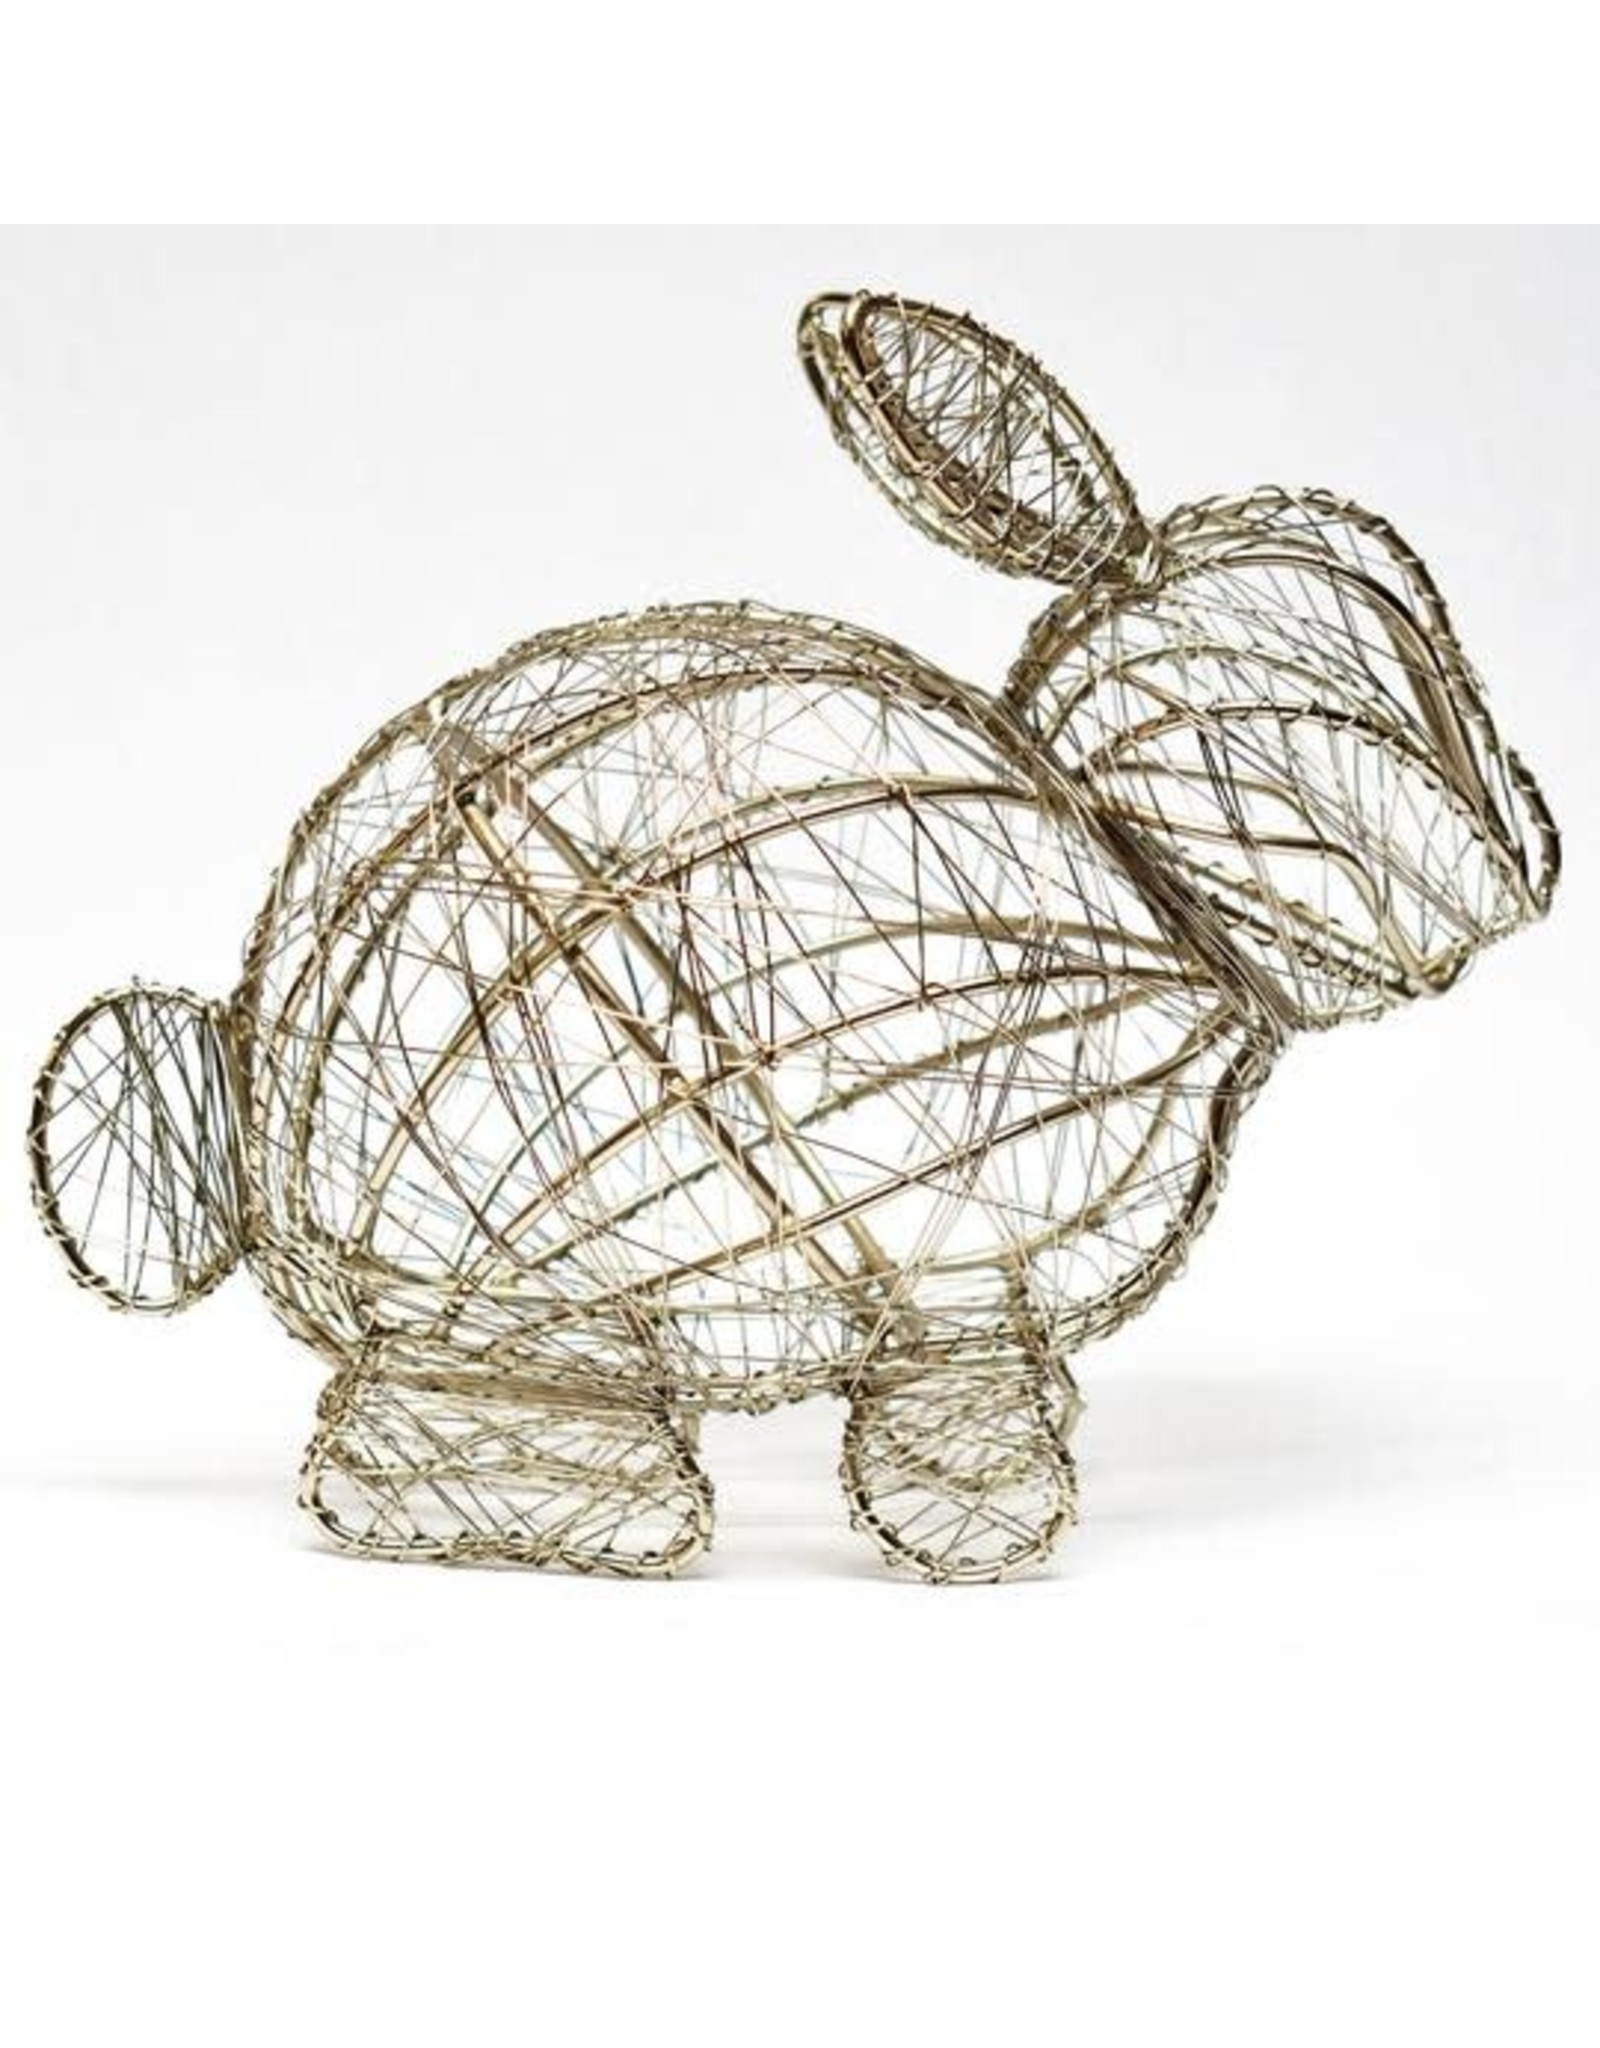 India, Large Wrapped Wire Bunny